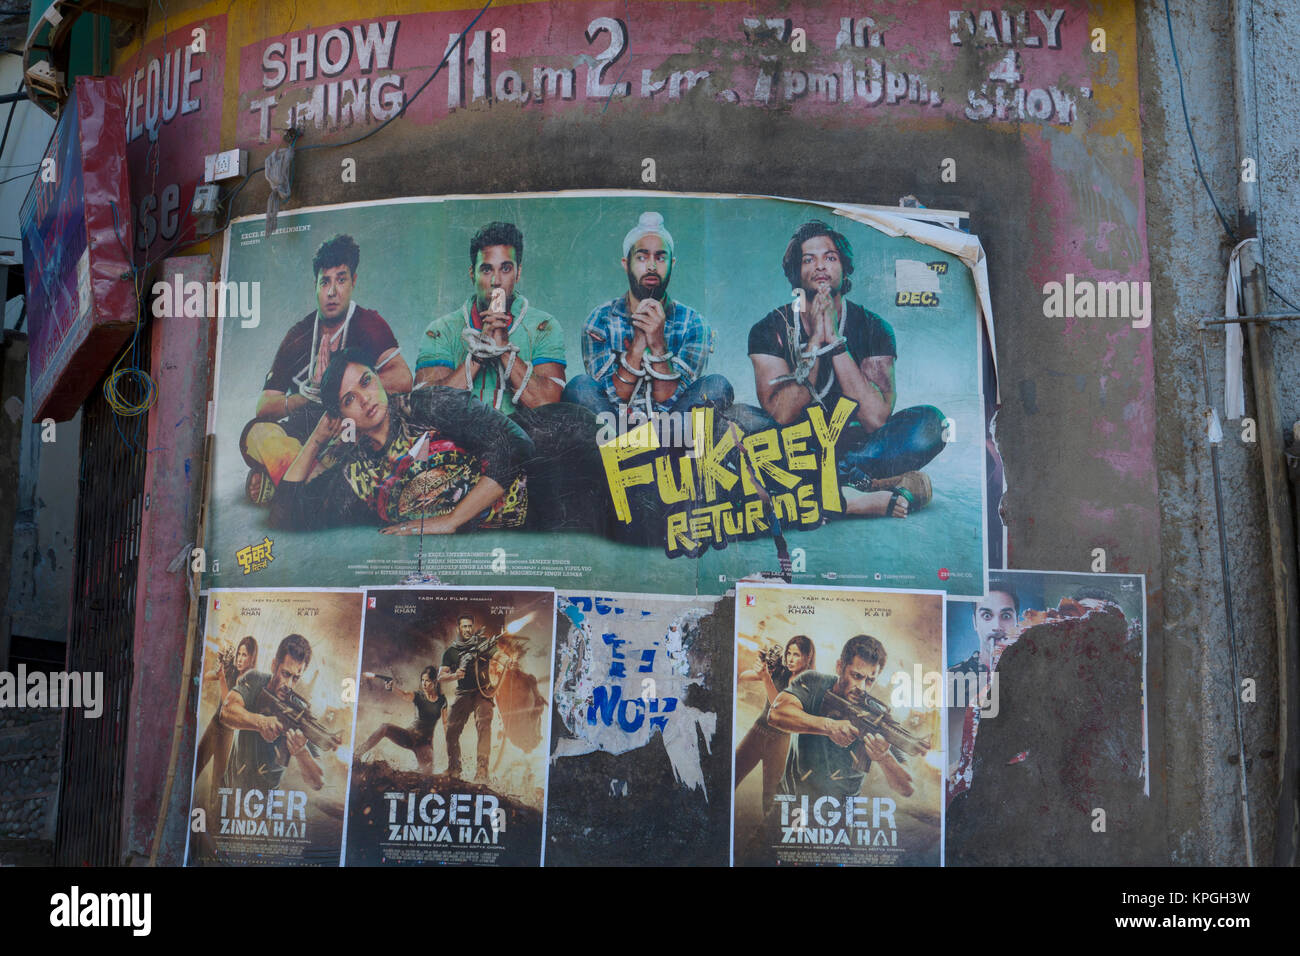 Rustic movie theatre with Bollywood movie posters showing current movies in Shimla, India - Stock Image